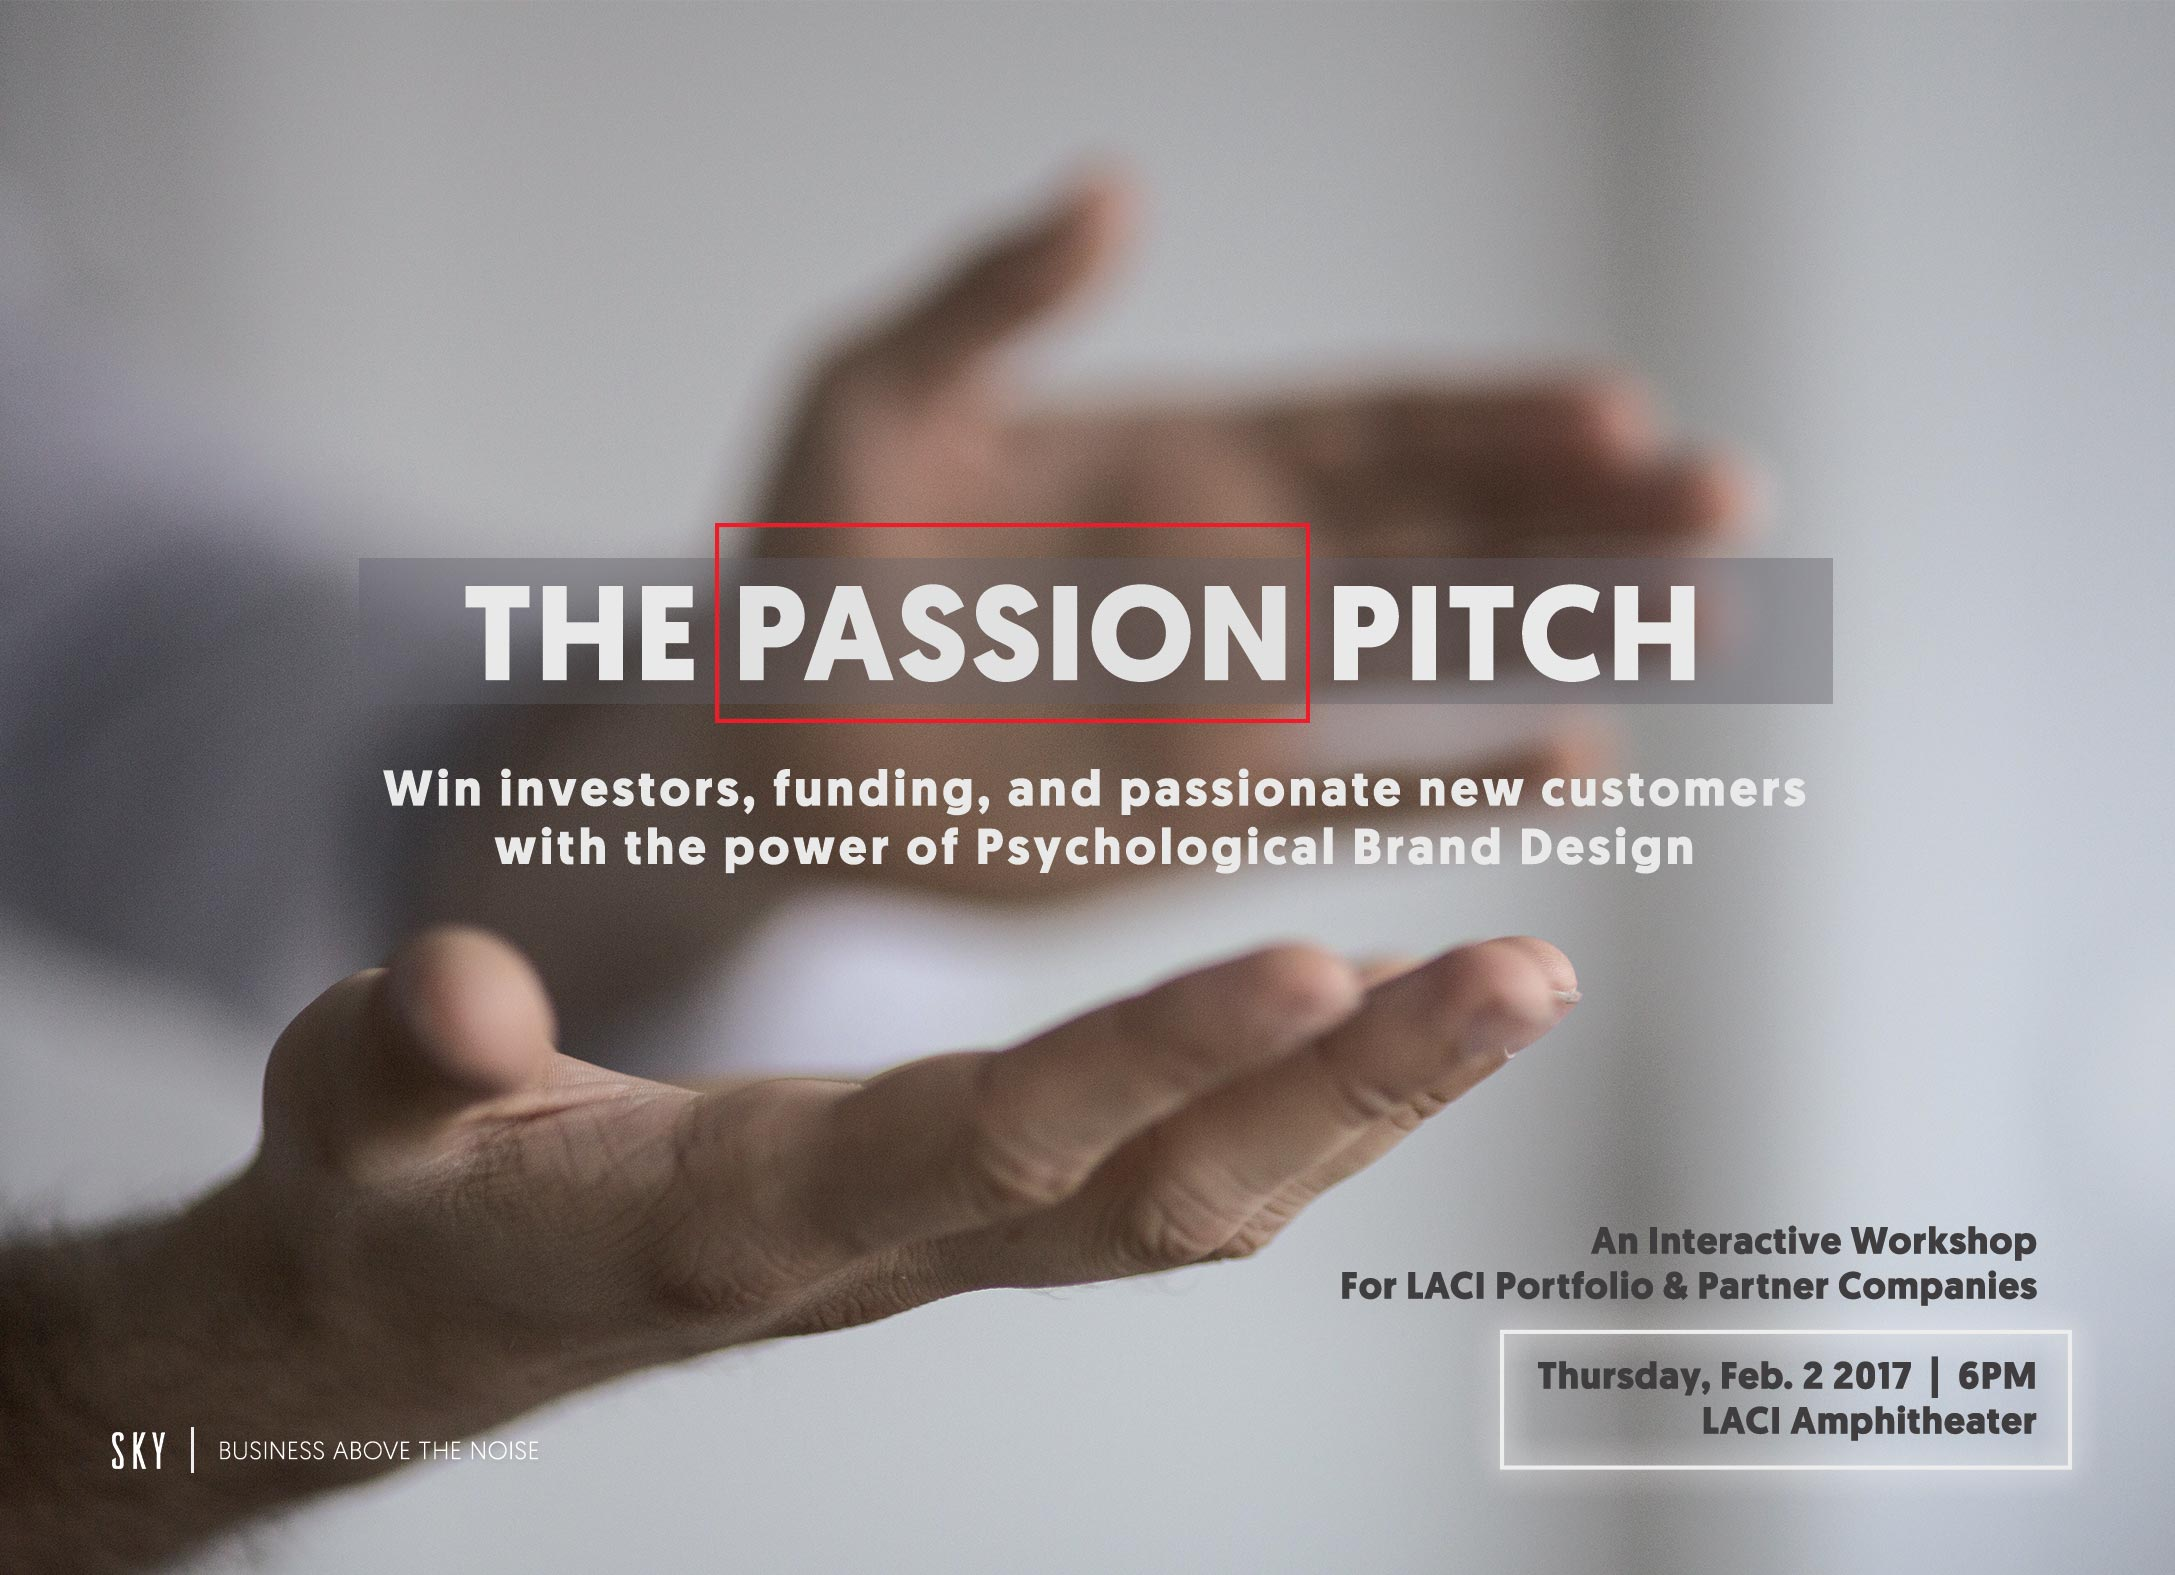 sky_passion-pitch-flyer-front-1